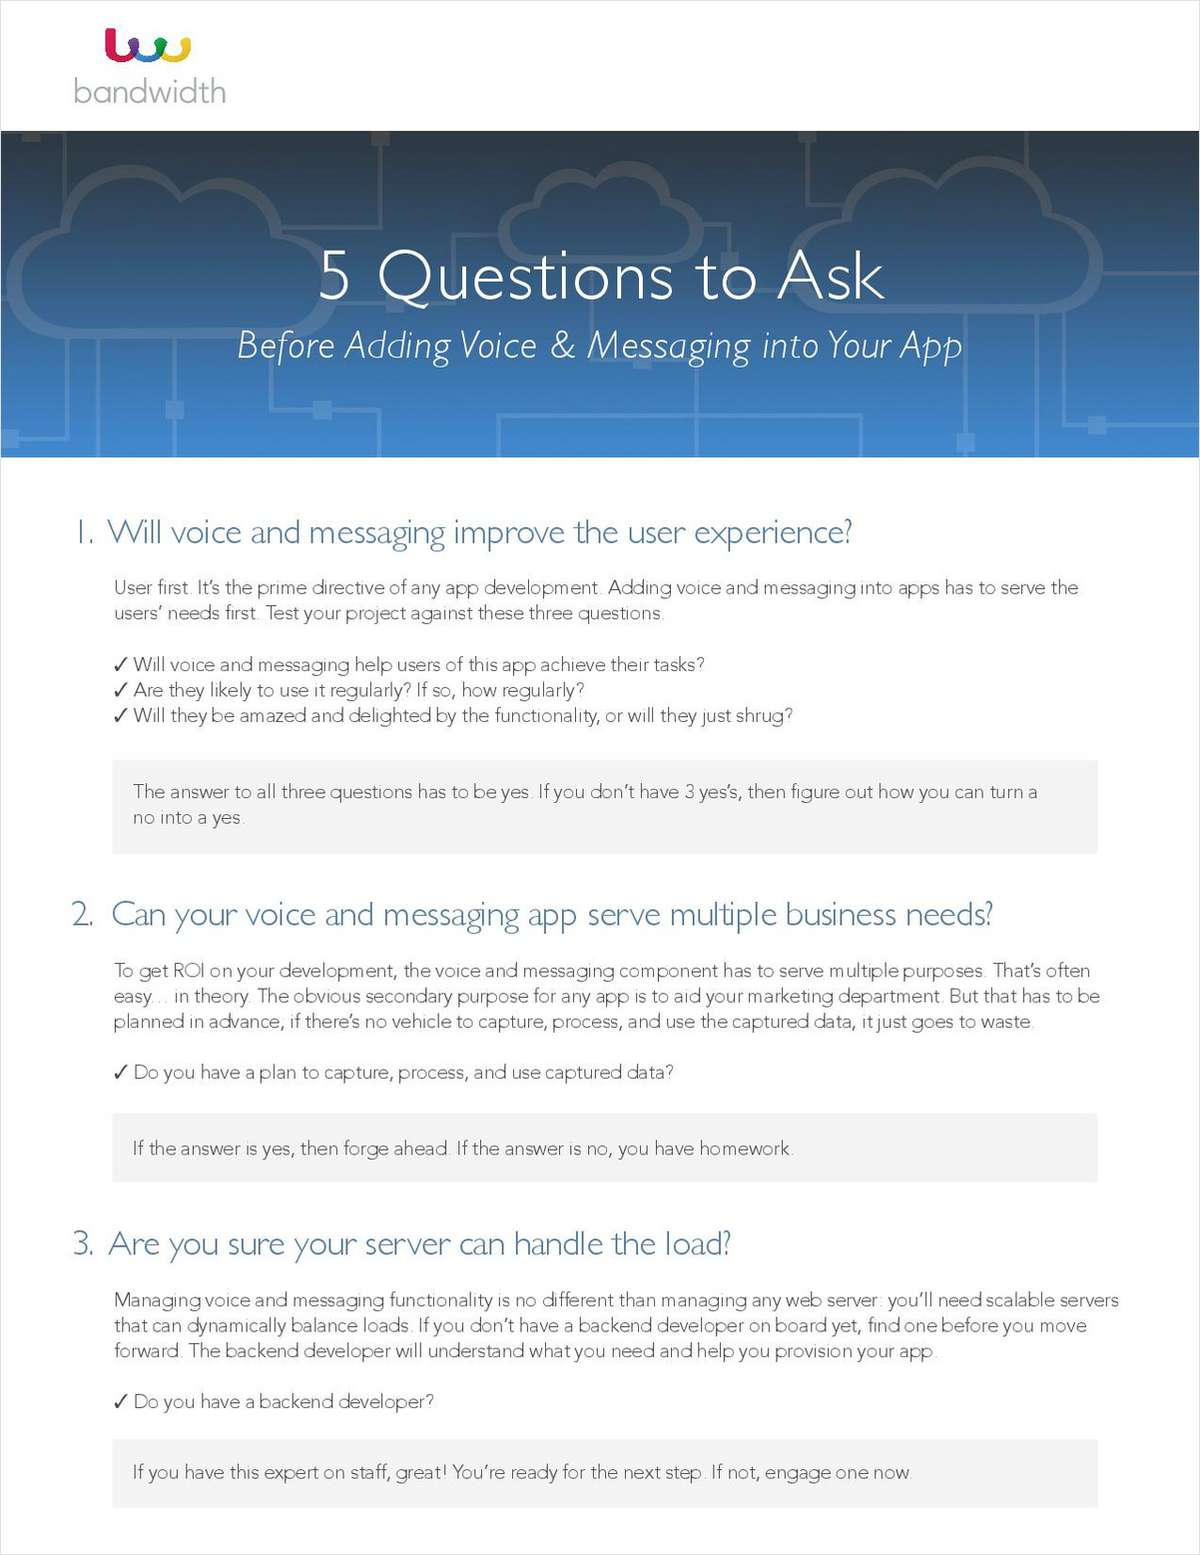 5 Questions to Ask Before Adding Voice & Messaging Into Your App